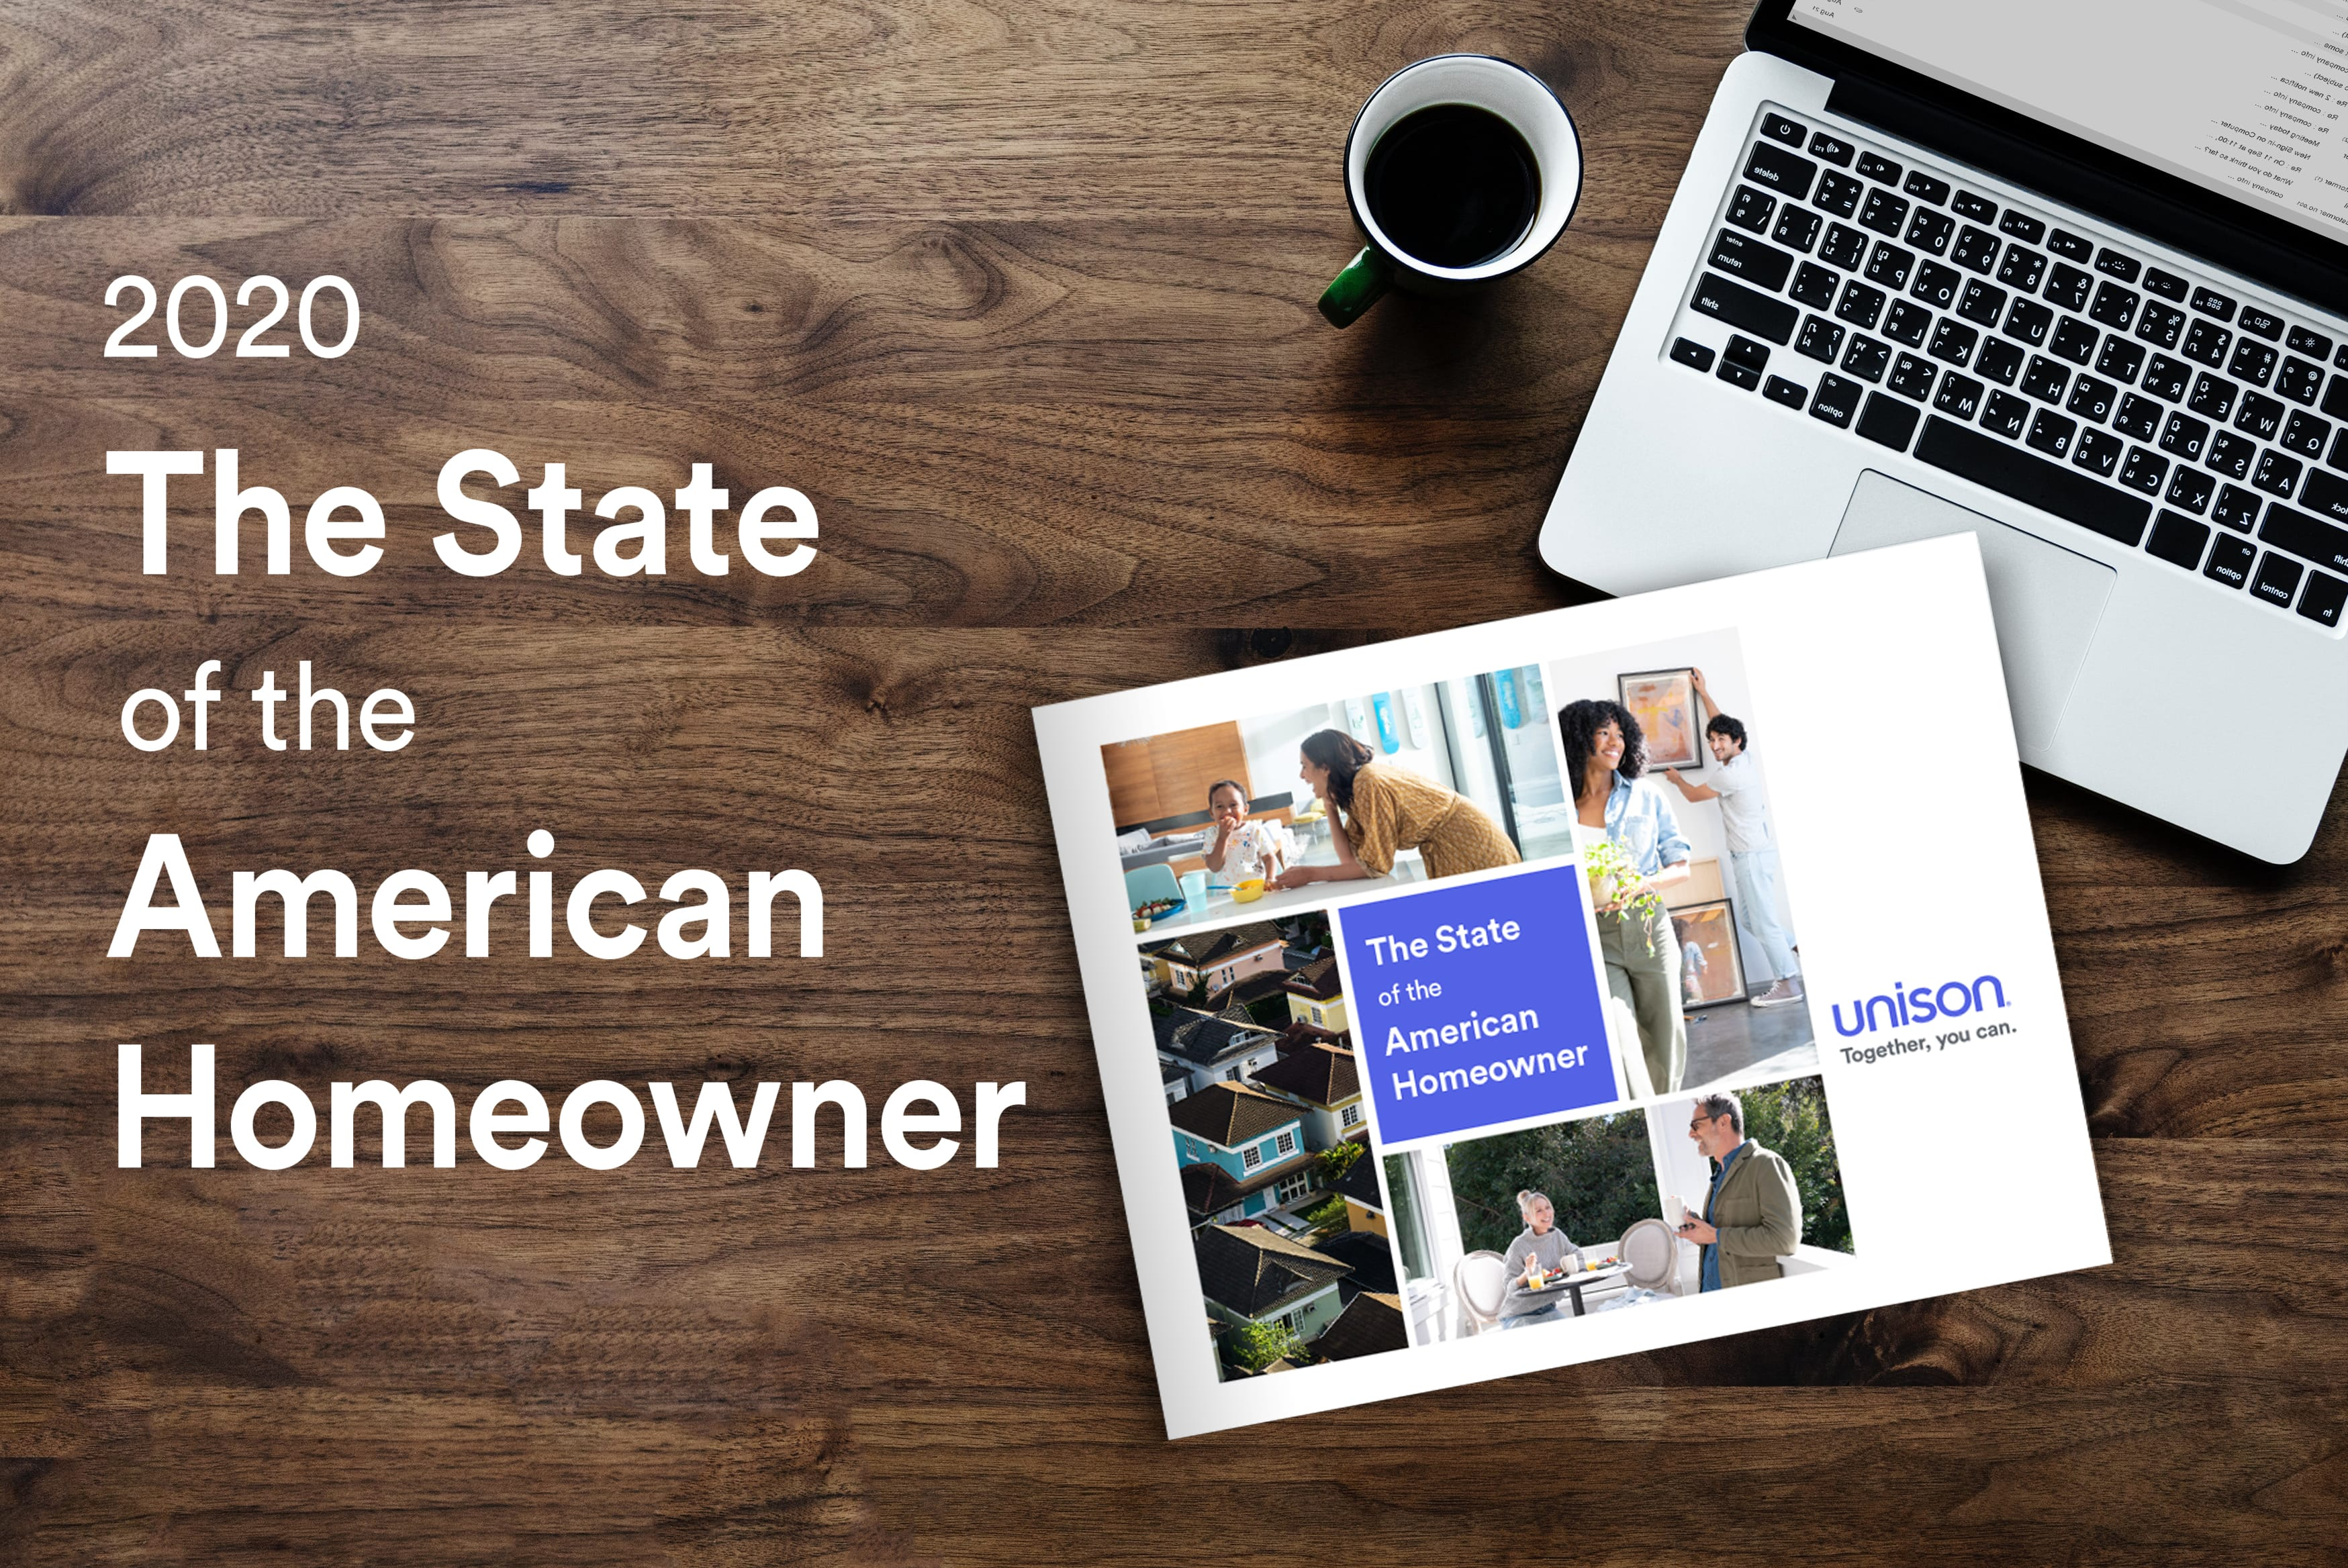 The State of the American Homeowner: What Every Homeowner Should Know